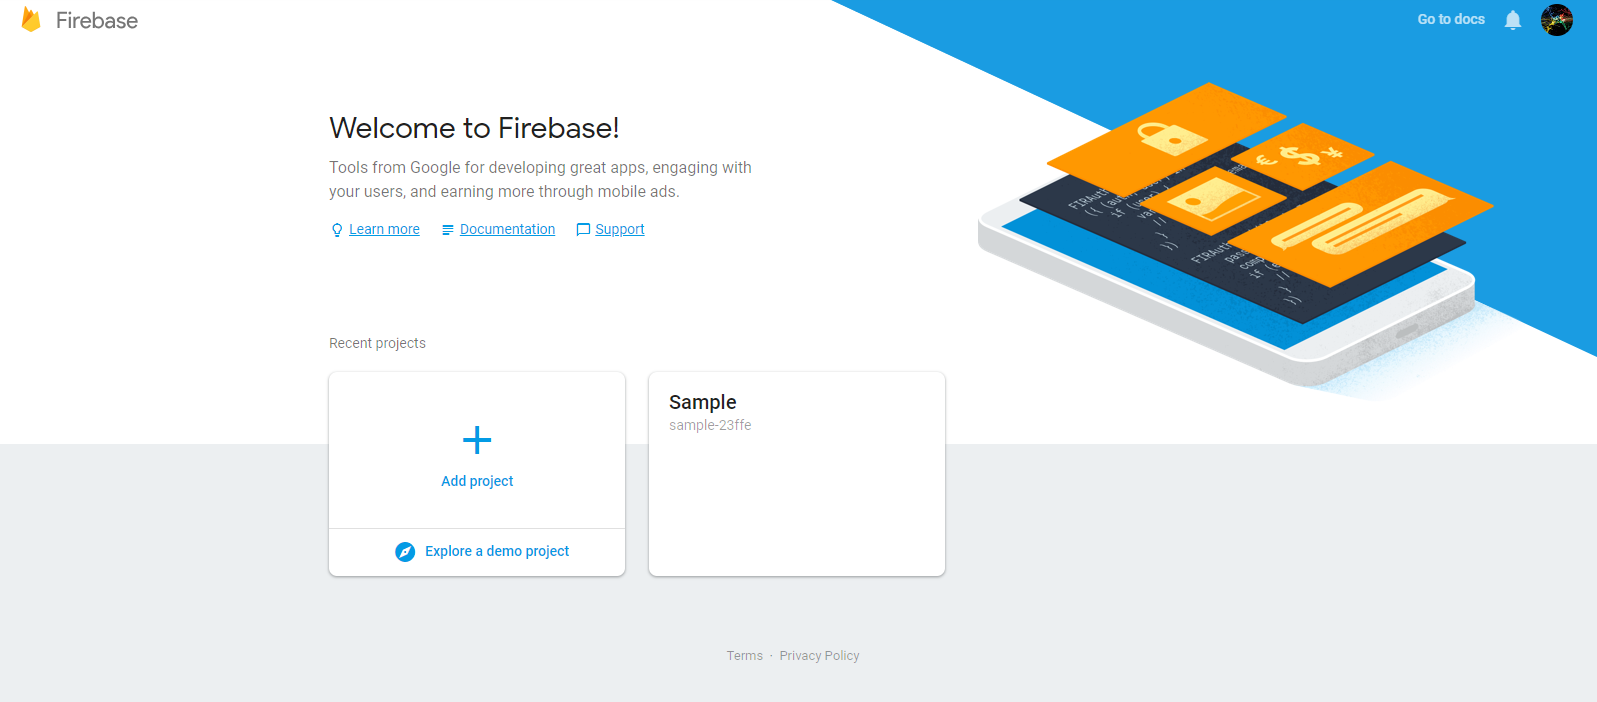 Figure 3: Welcome to Firebase